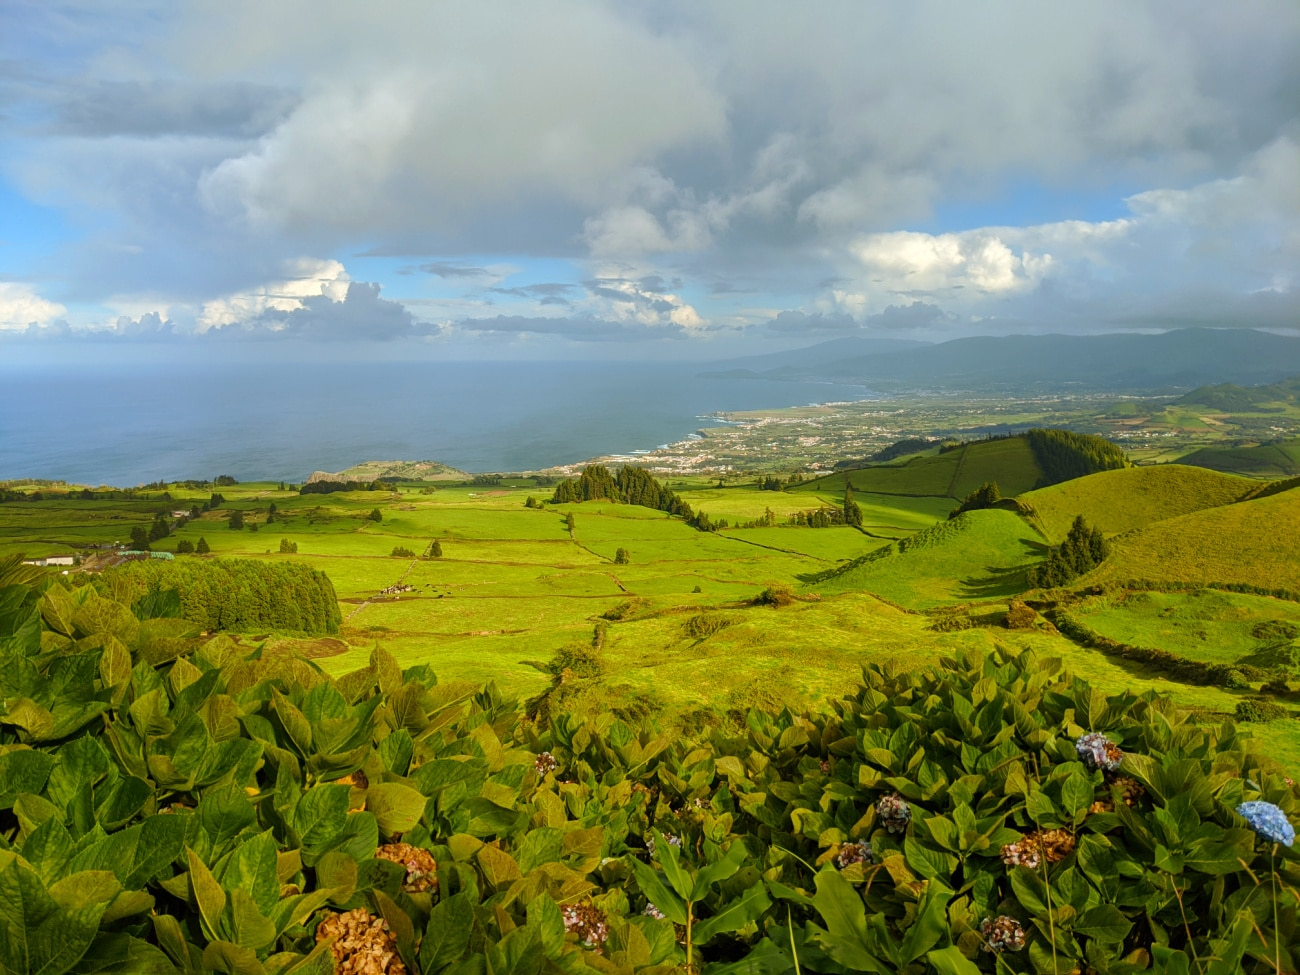 A Visit to the Azores During the COVID Pandemic